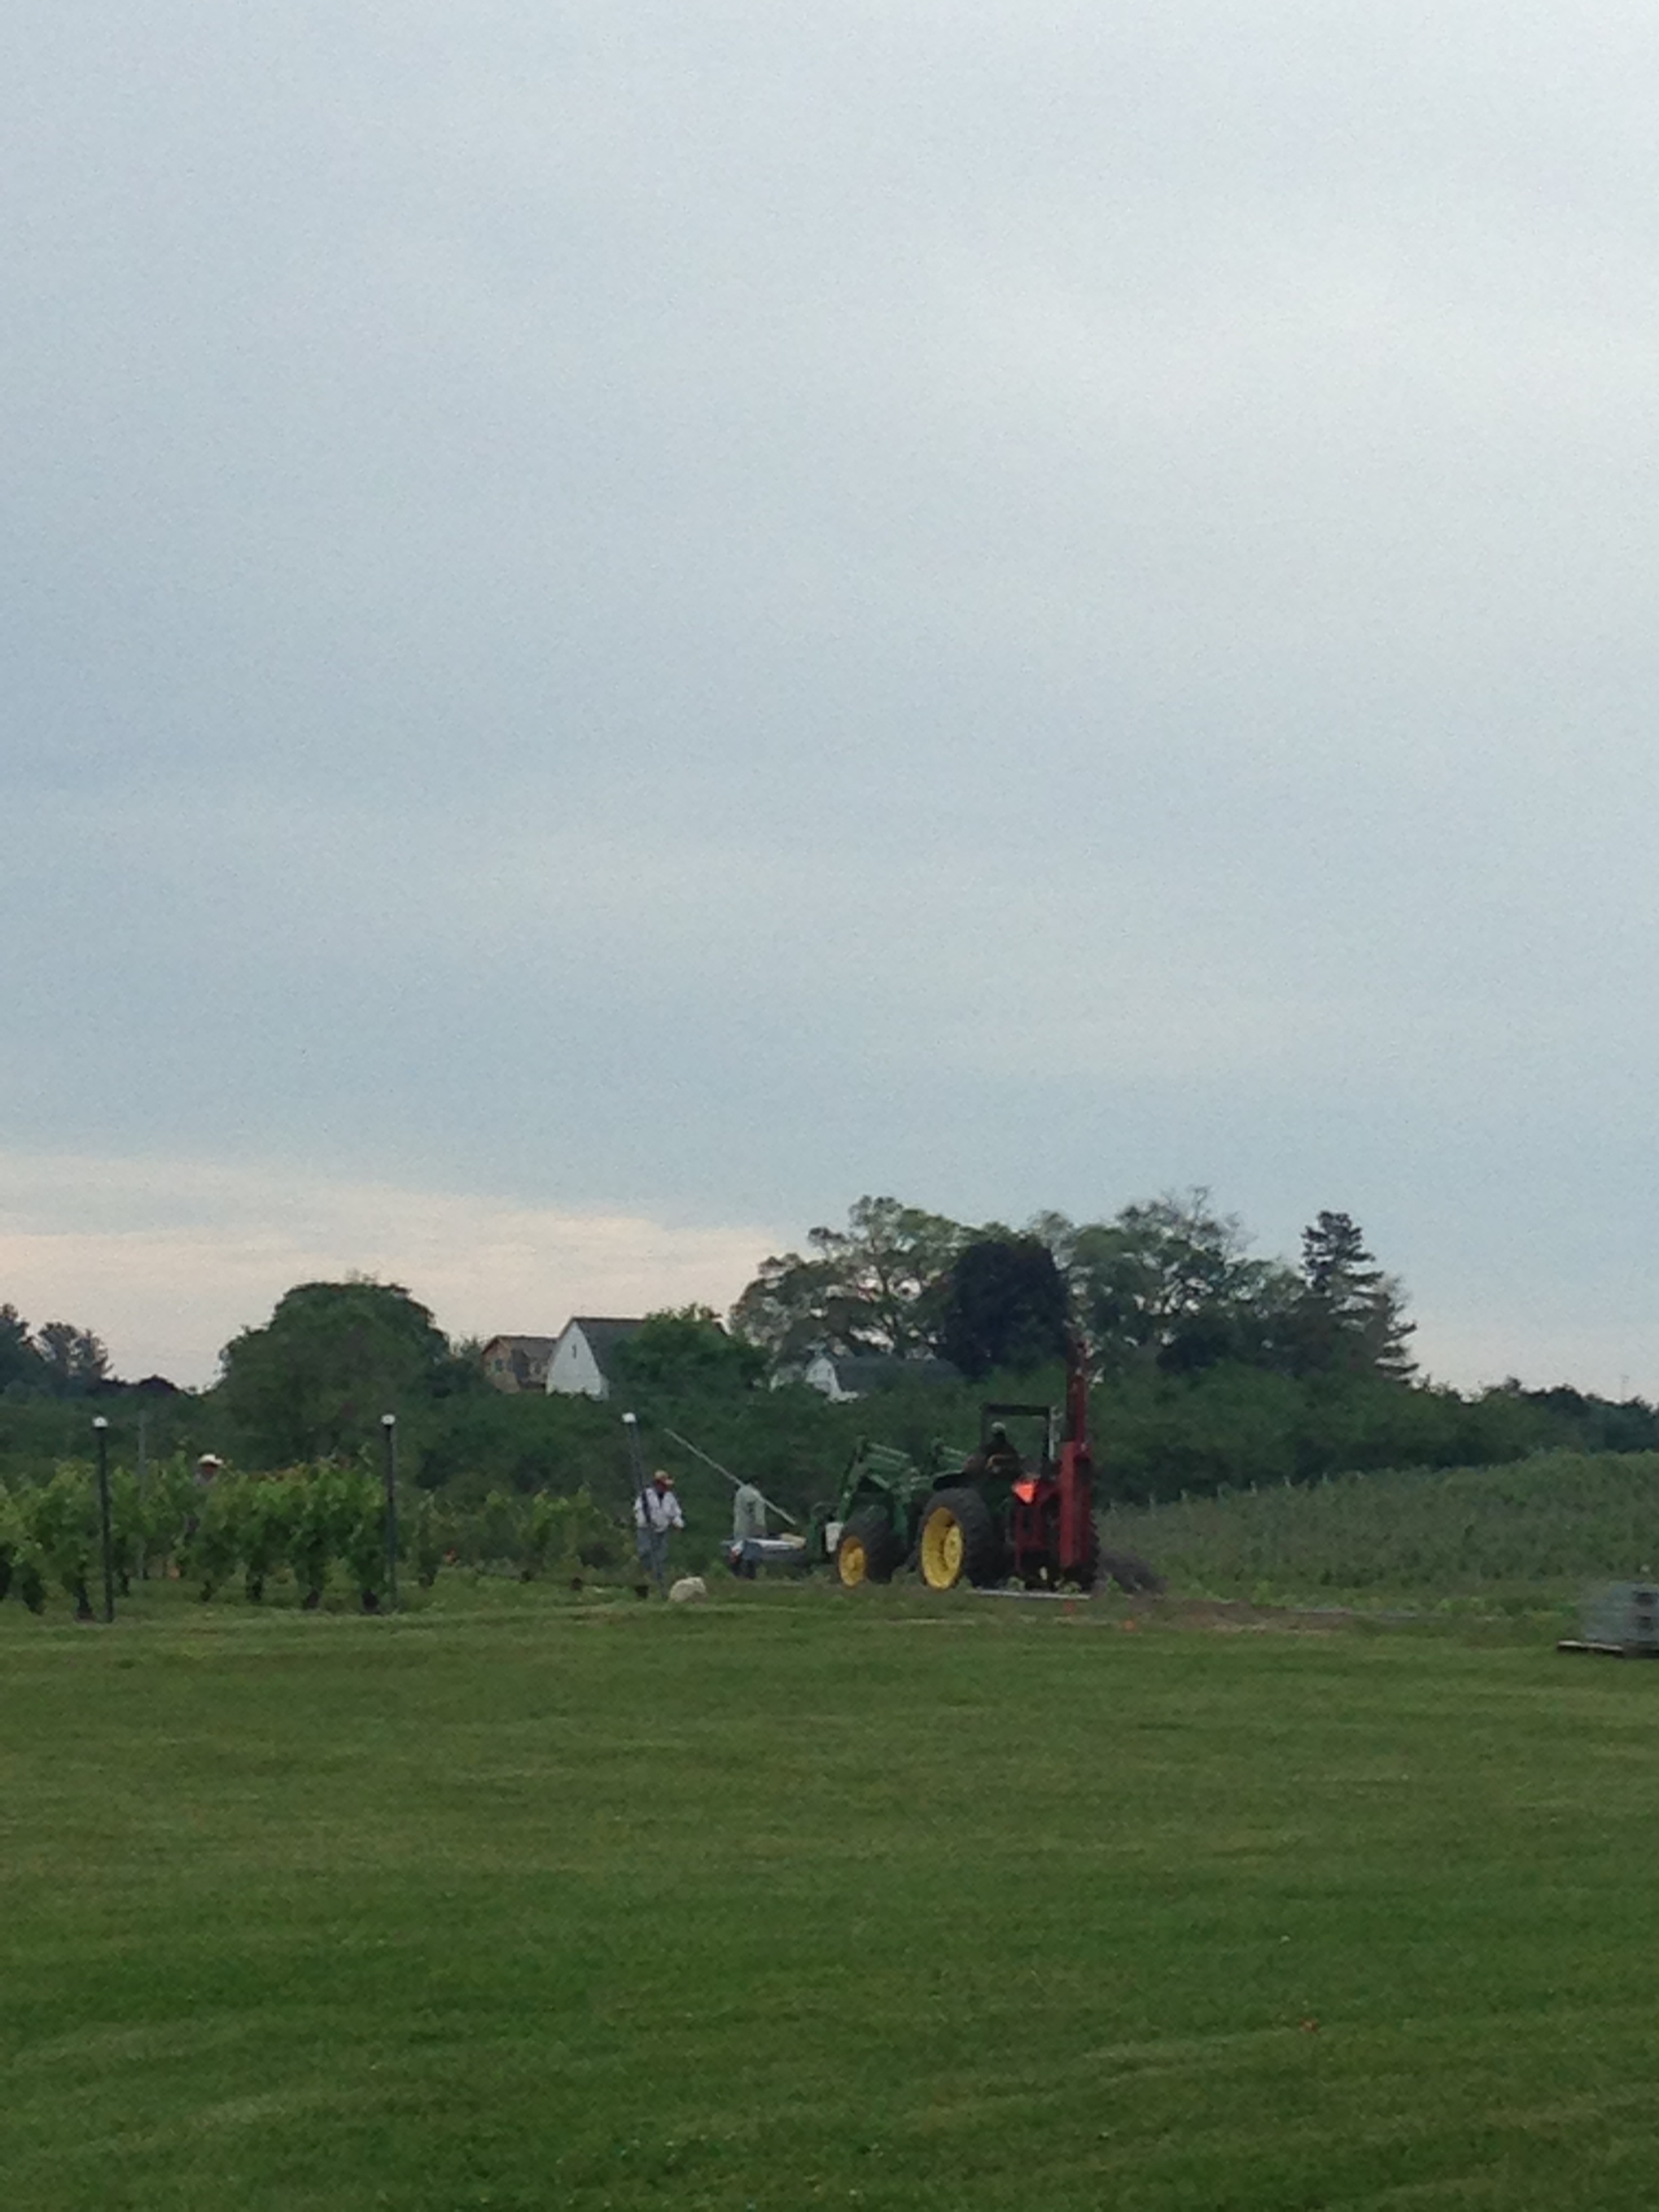 Remember: wine making is farming!